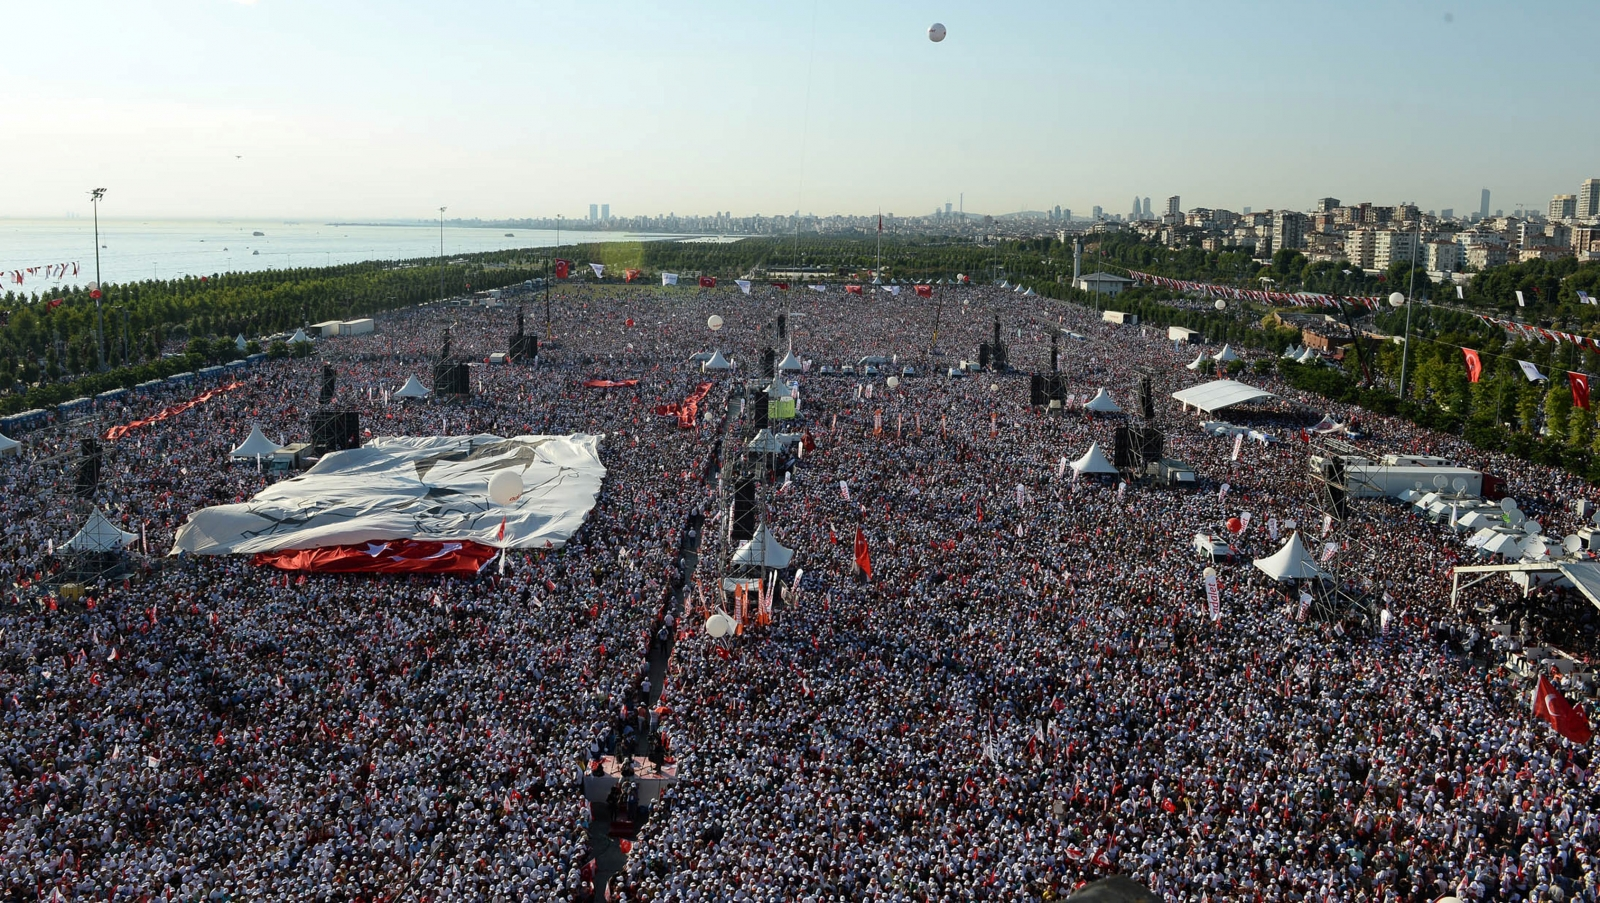 Turkey braces for grand finale of daring 'Justice March'